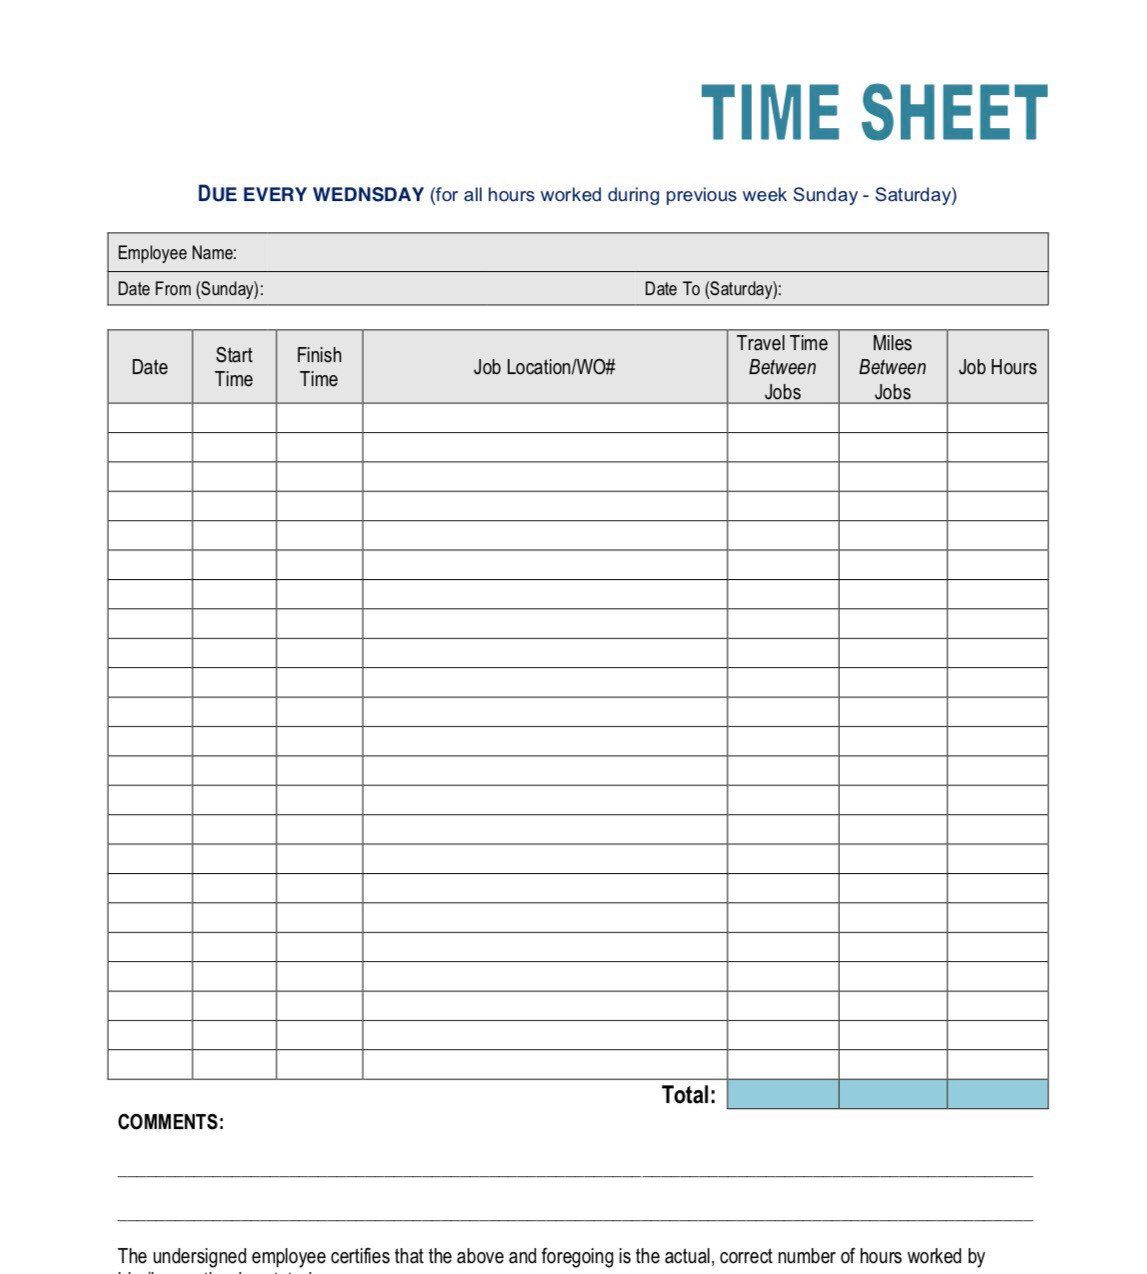 Simple Time Sheet Etsy In 2021 Time Sheet Printable Cleaning Checklist Printable Business Printables Timesheet sign in and out